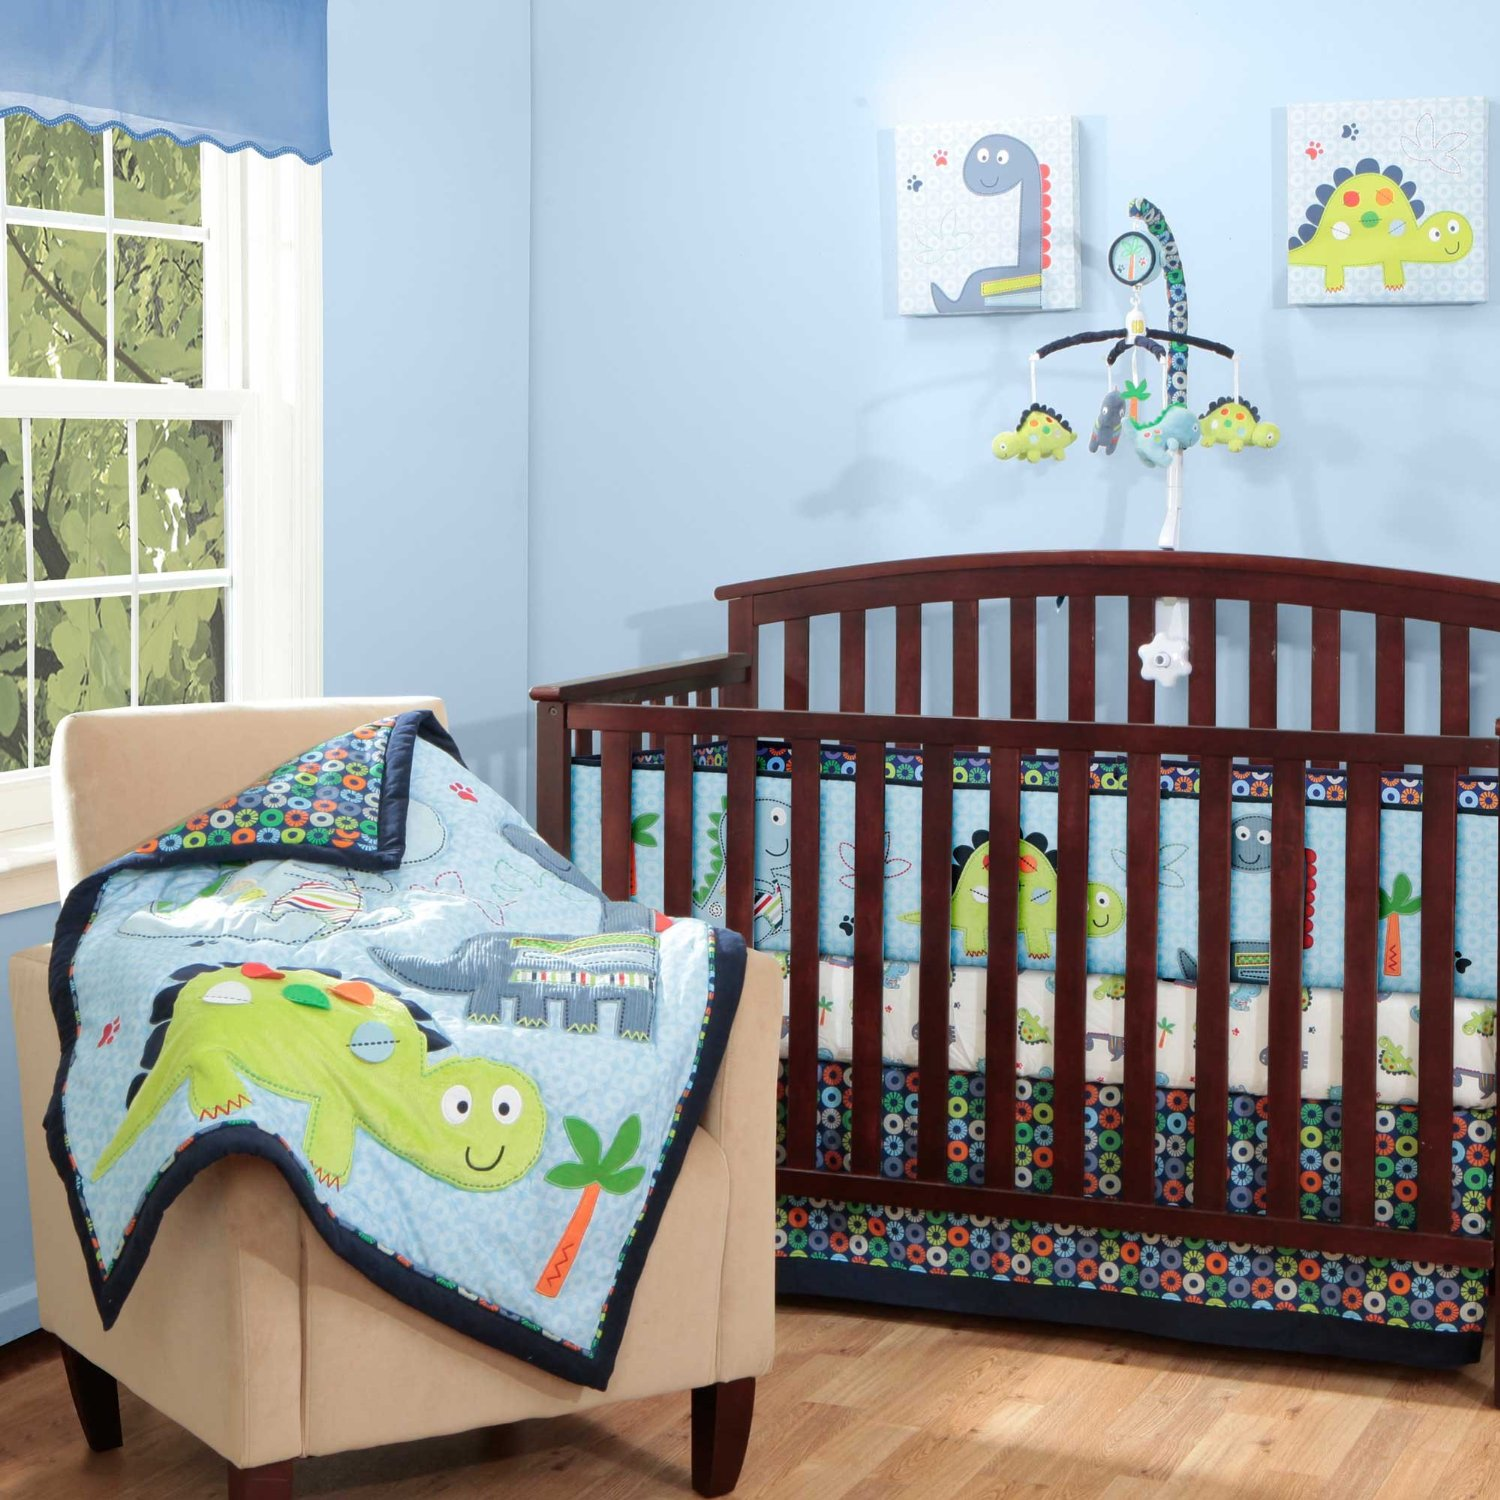 Adorable Dino Crib Bedding Set